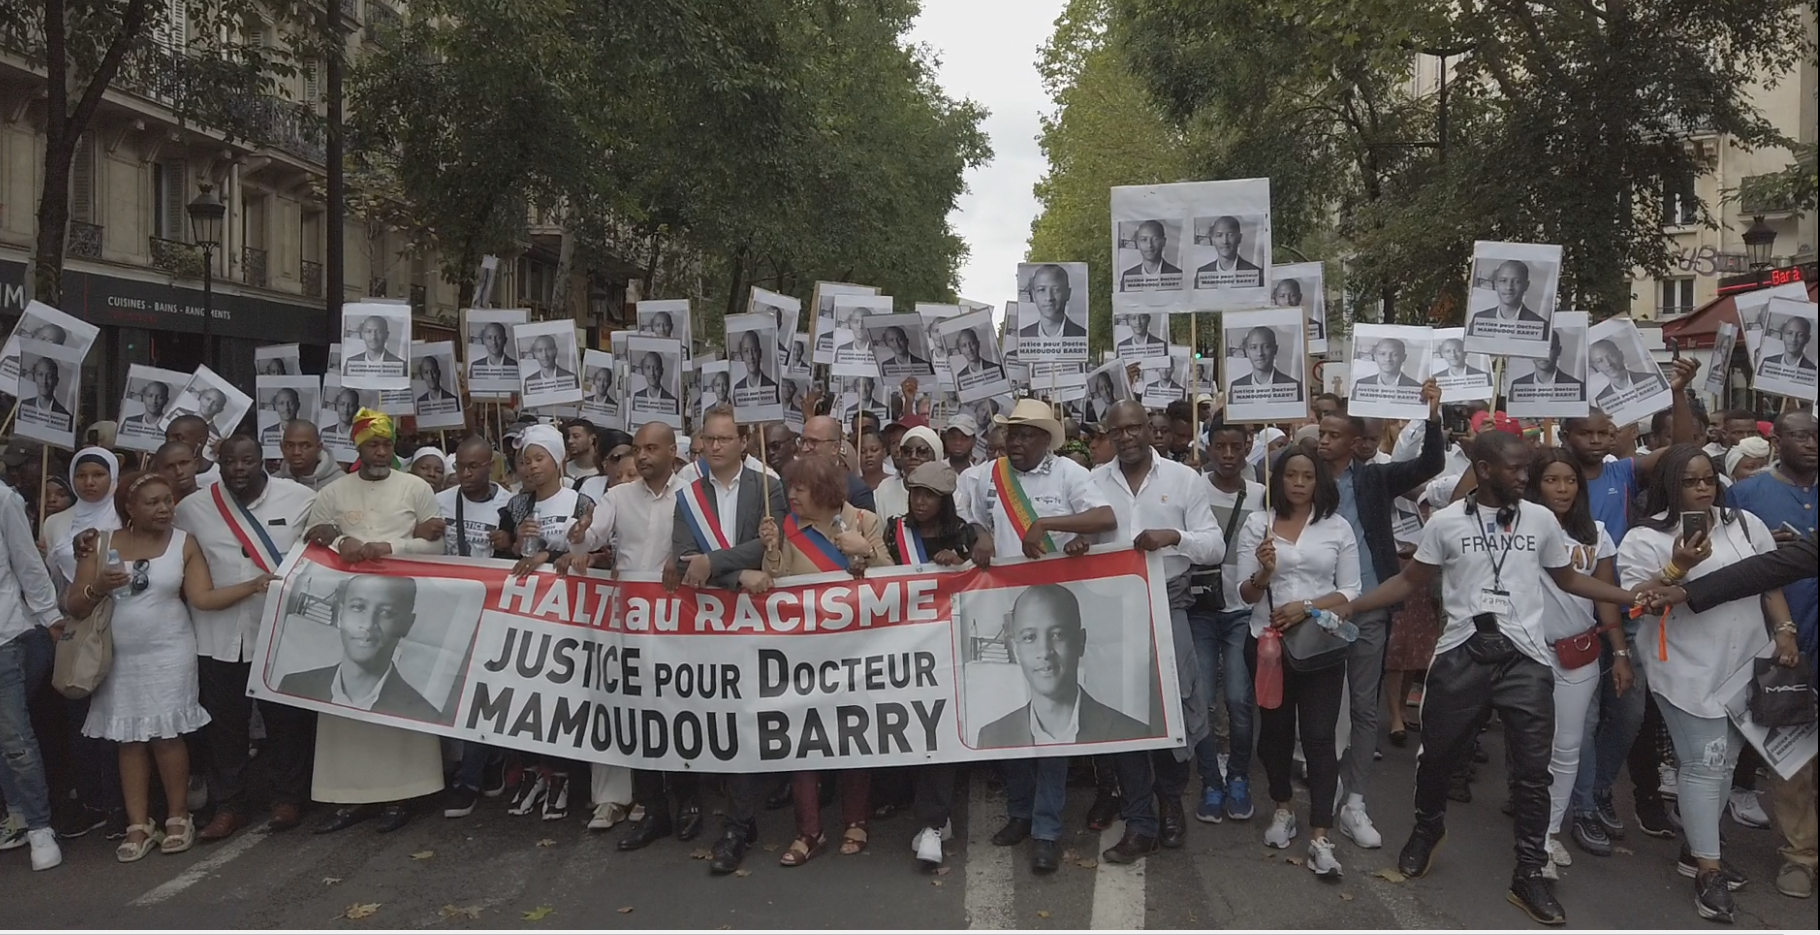 """Carrying signs saying """"stop racism"""" and """"justice for doctor Mamoudou Barry"""", hundreds of people marched in Paris Saturday to demand justice for the murdered Guinean researcher, 27 July 2019"""